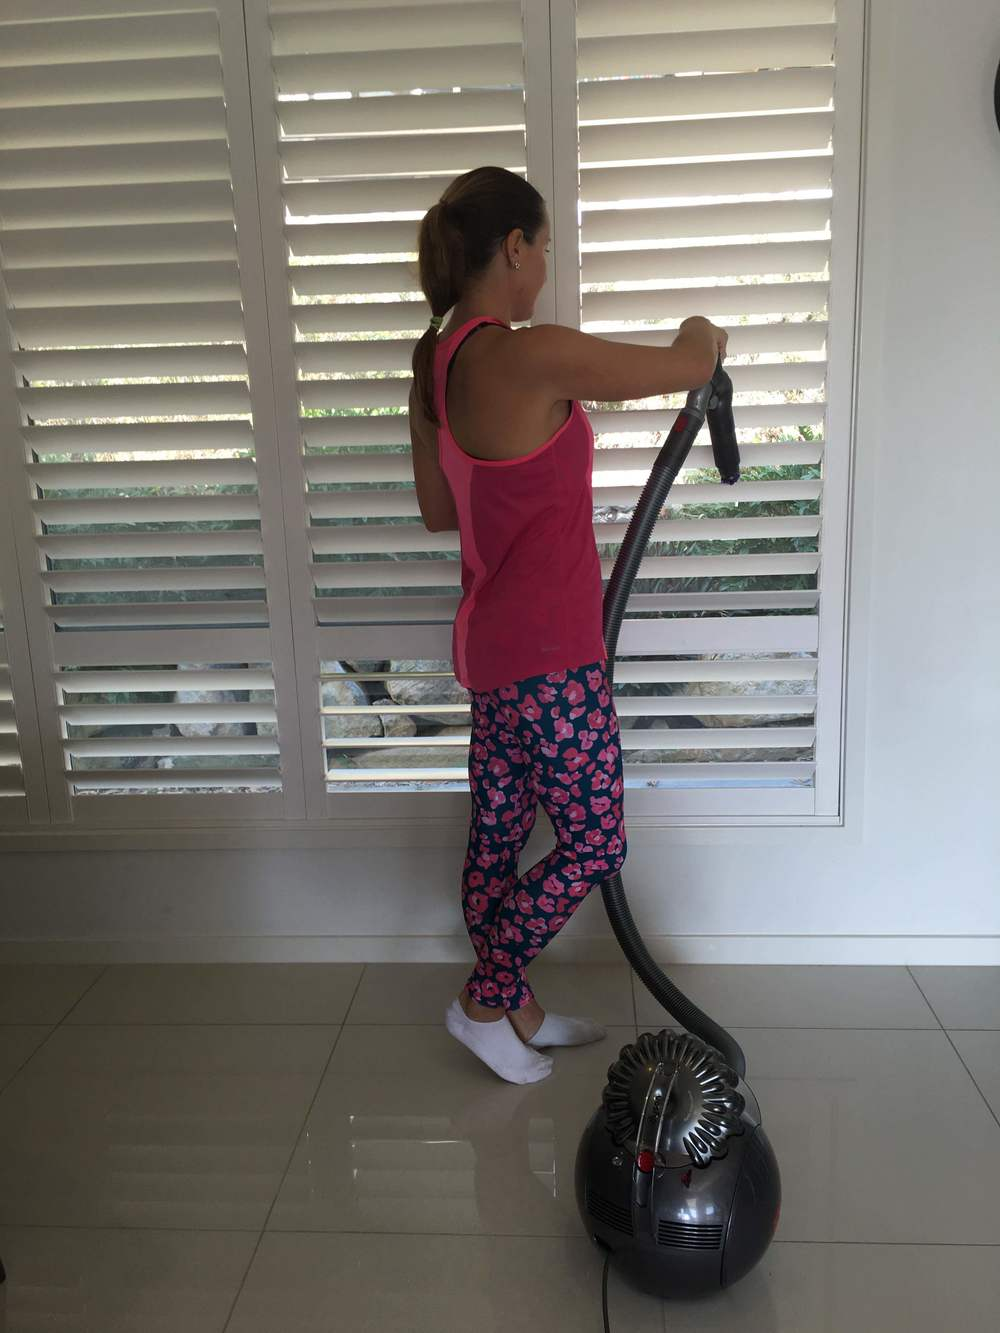 Claire Chadwick reviews the new Dyson Cinetic vacuum cleaner on www.mumscloset.com.au